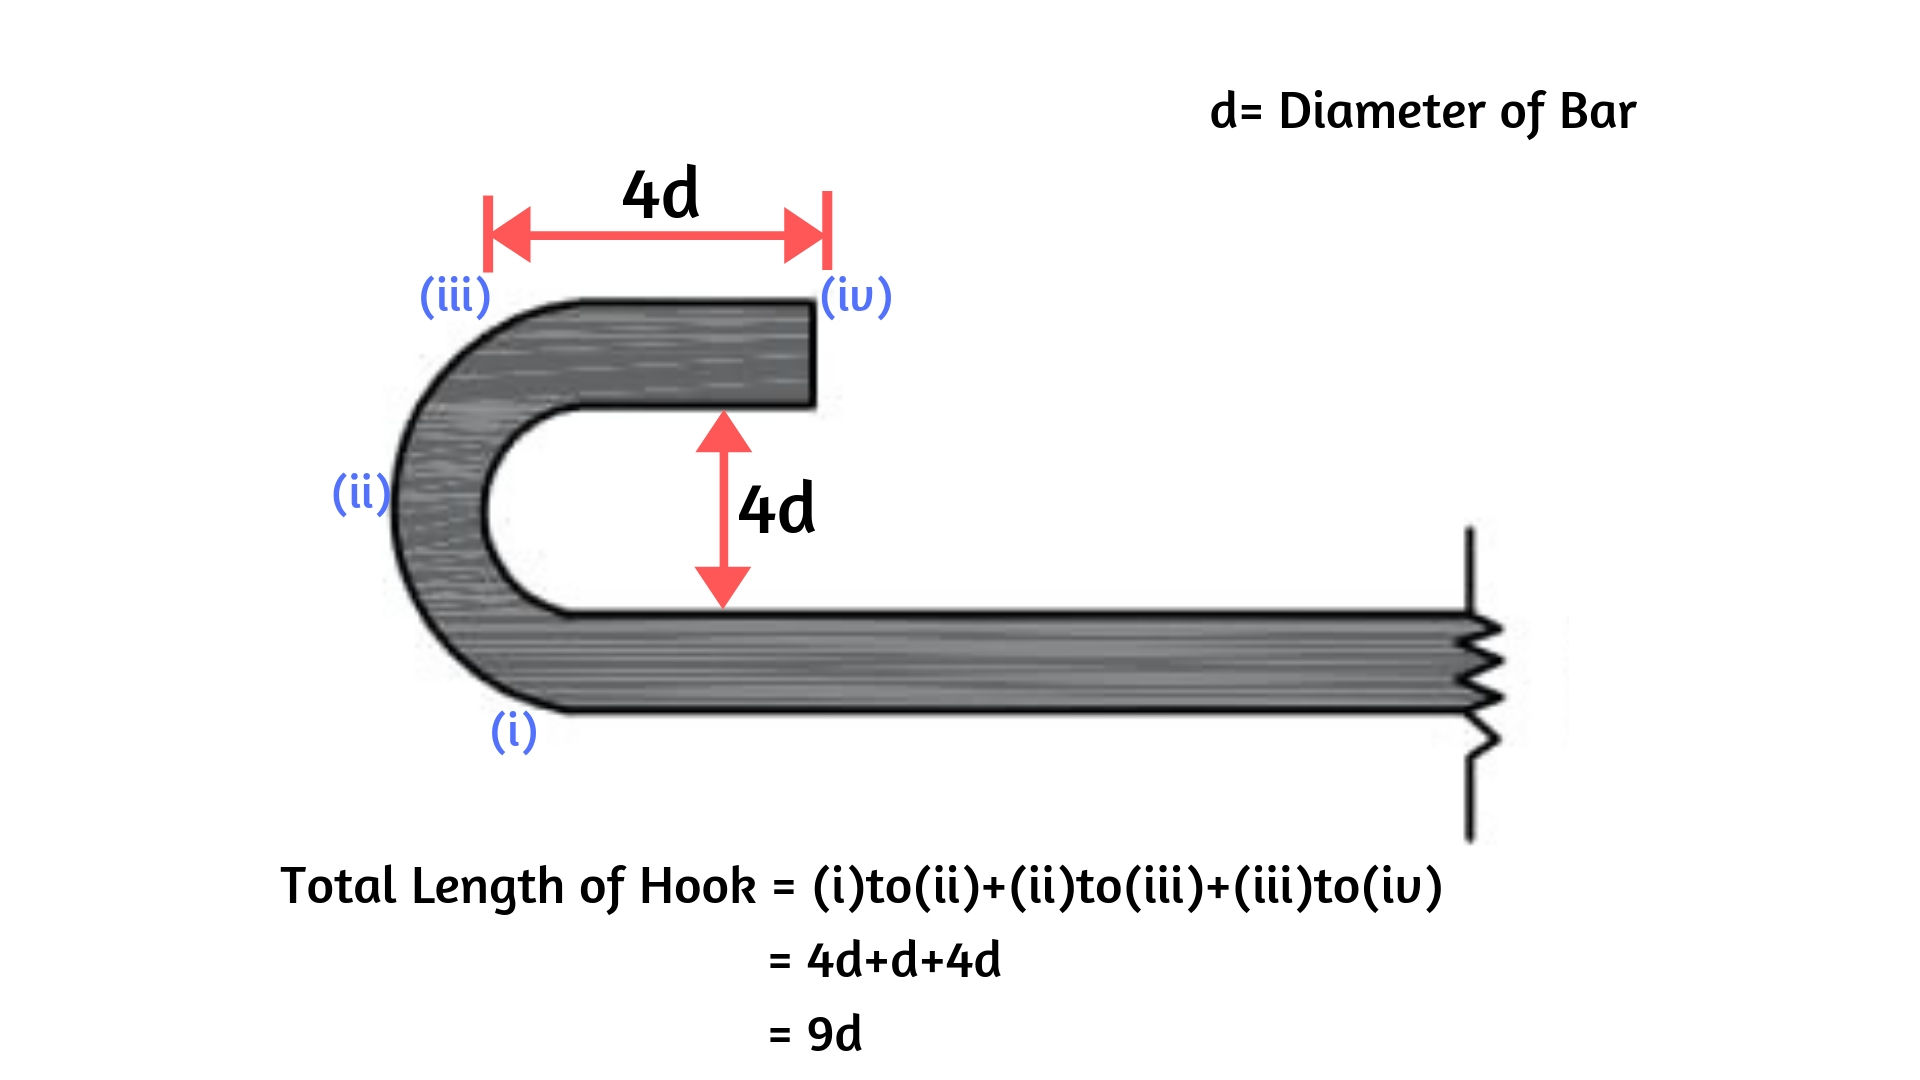 Hook length is 9d